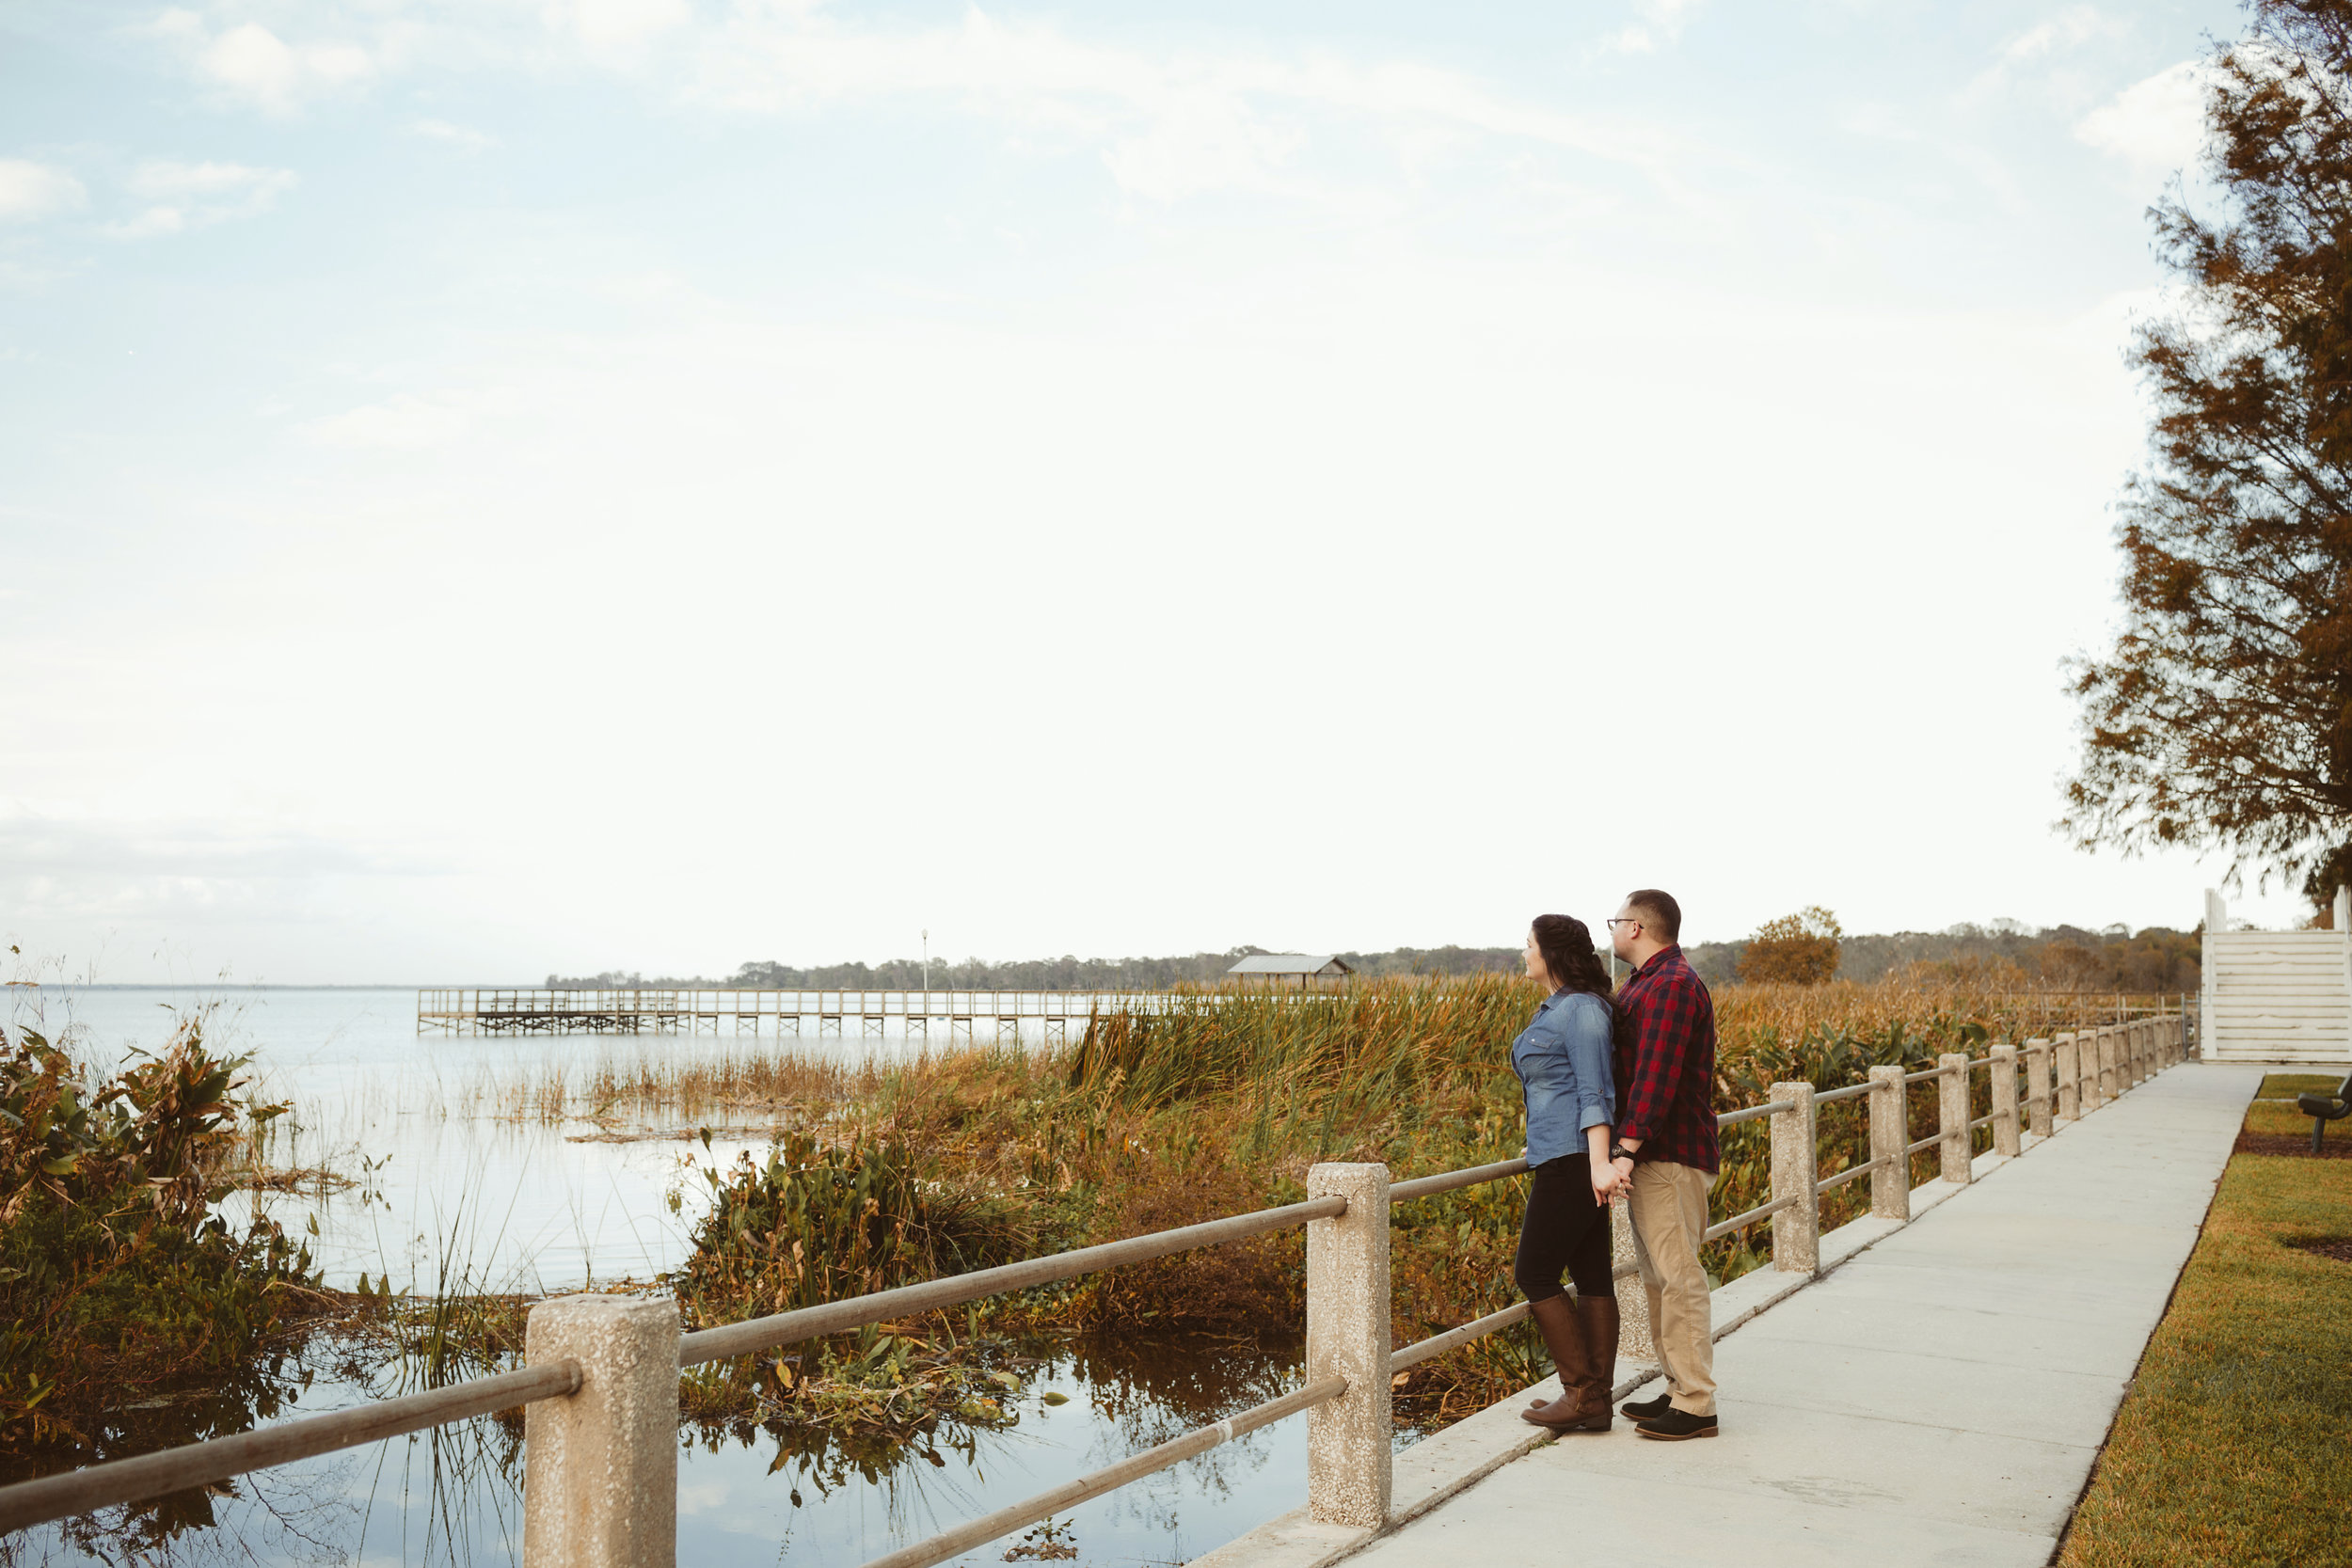 Engagement Session | Vanessa Boy |Vanessaboy.com | orlando,fl-115.com |final.jpg